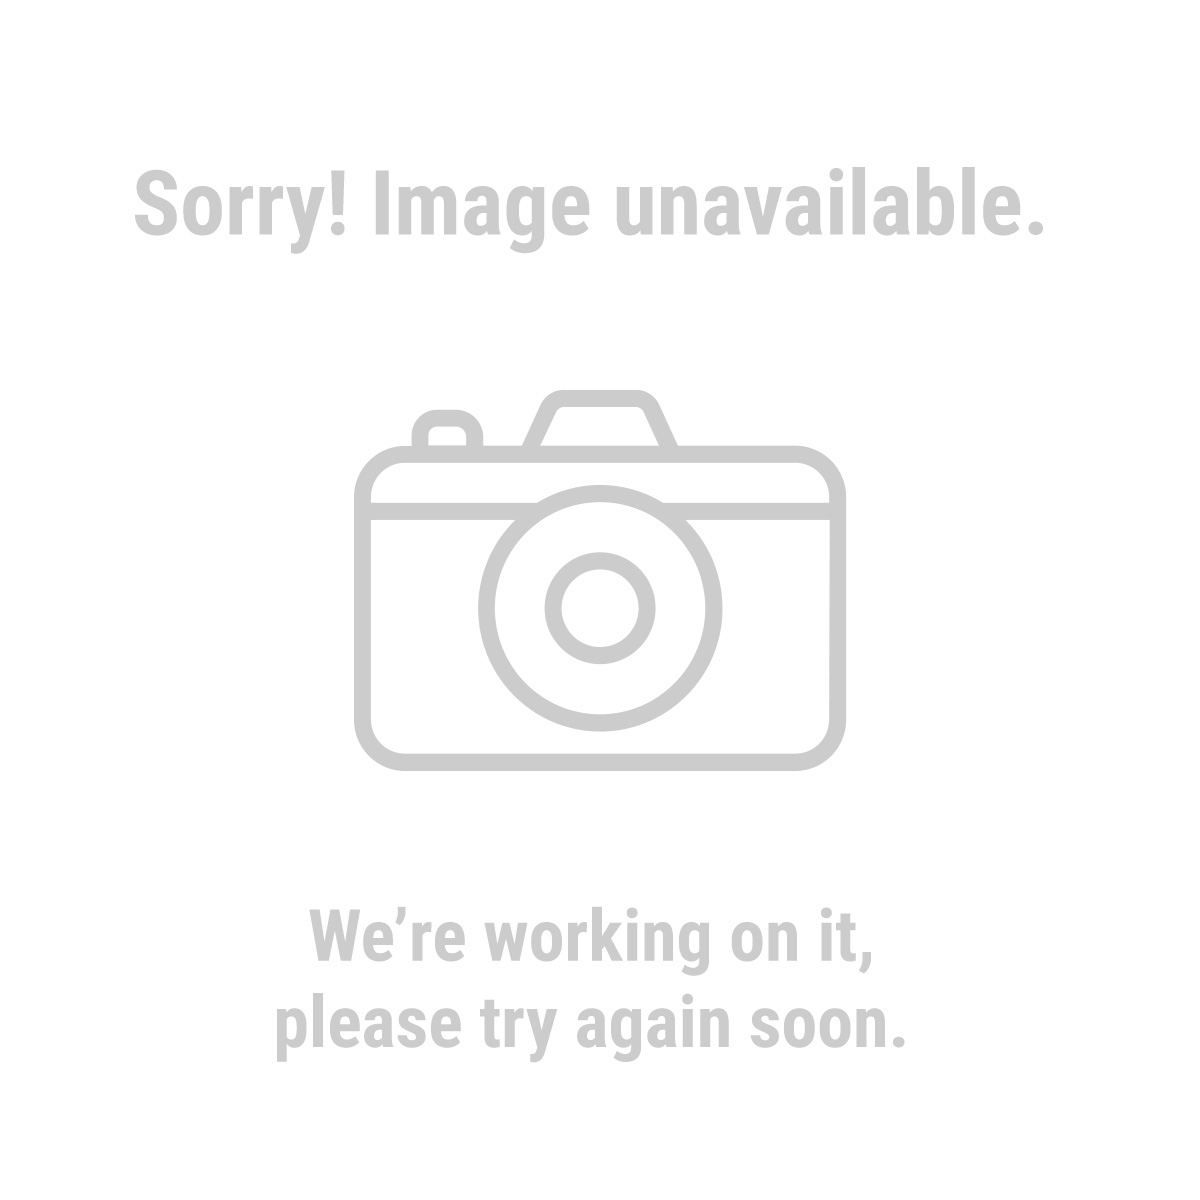 Chicago Electric Power Tools 41446 25 Ft. x 14 Gauge Outdoor Extension Cord